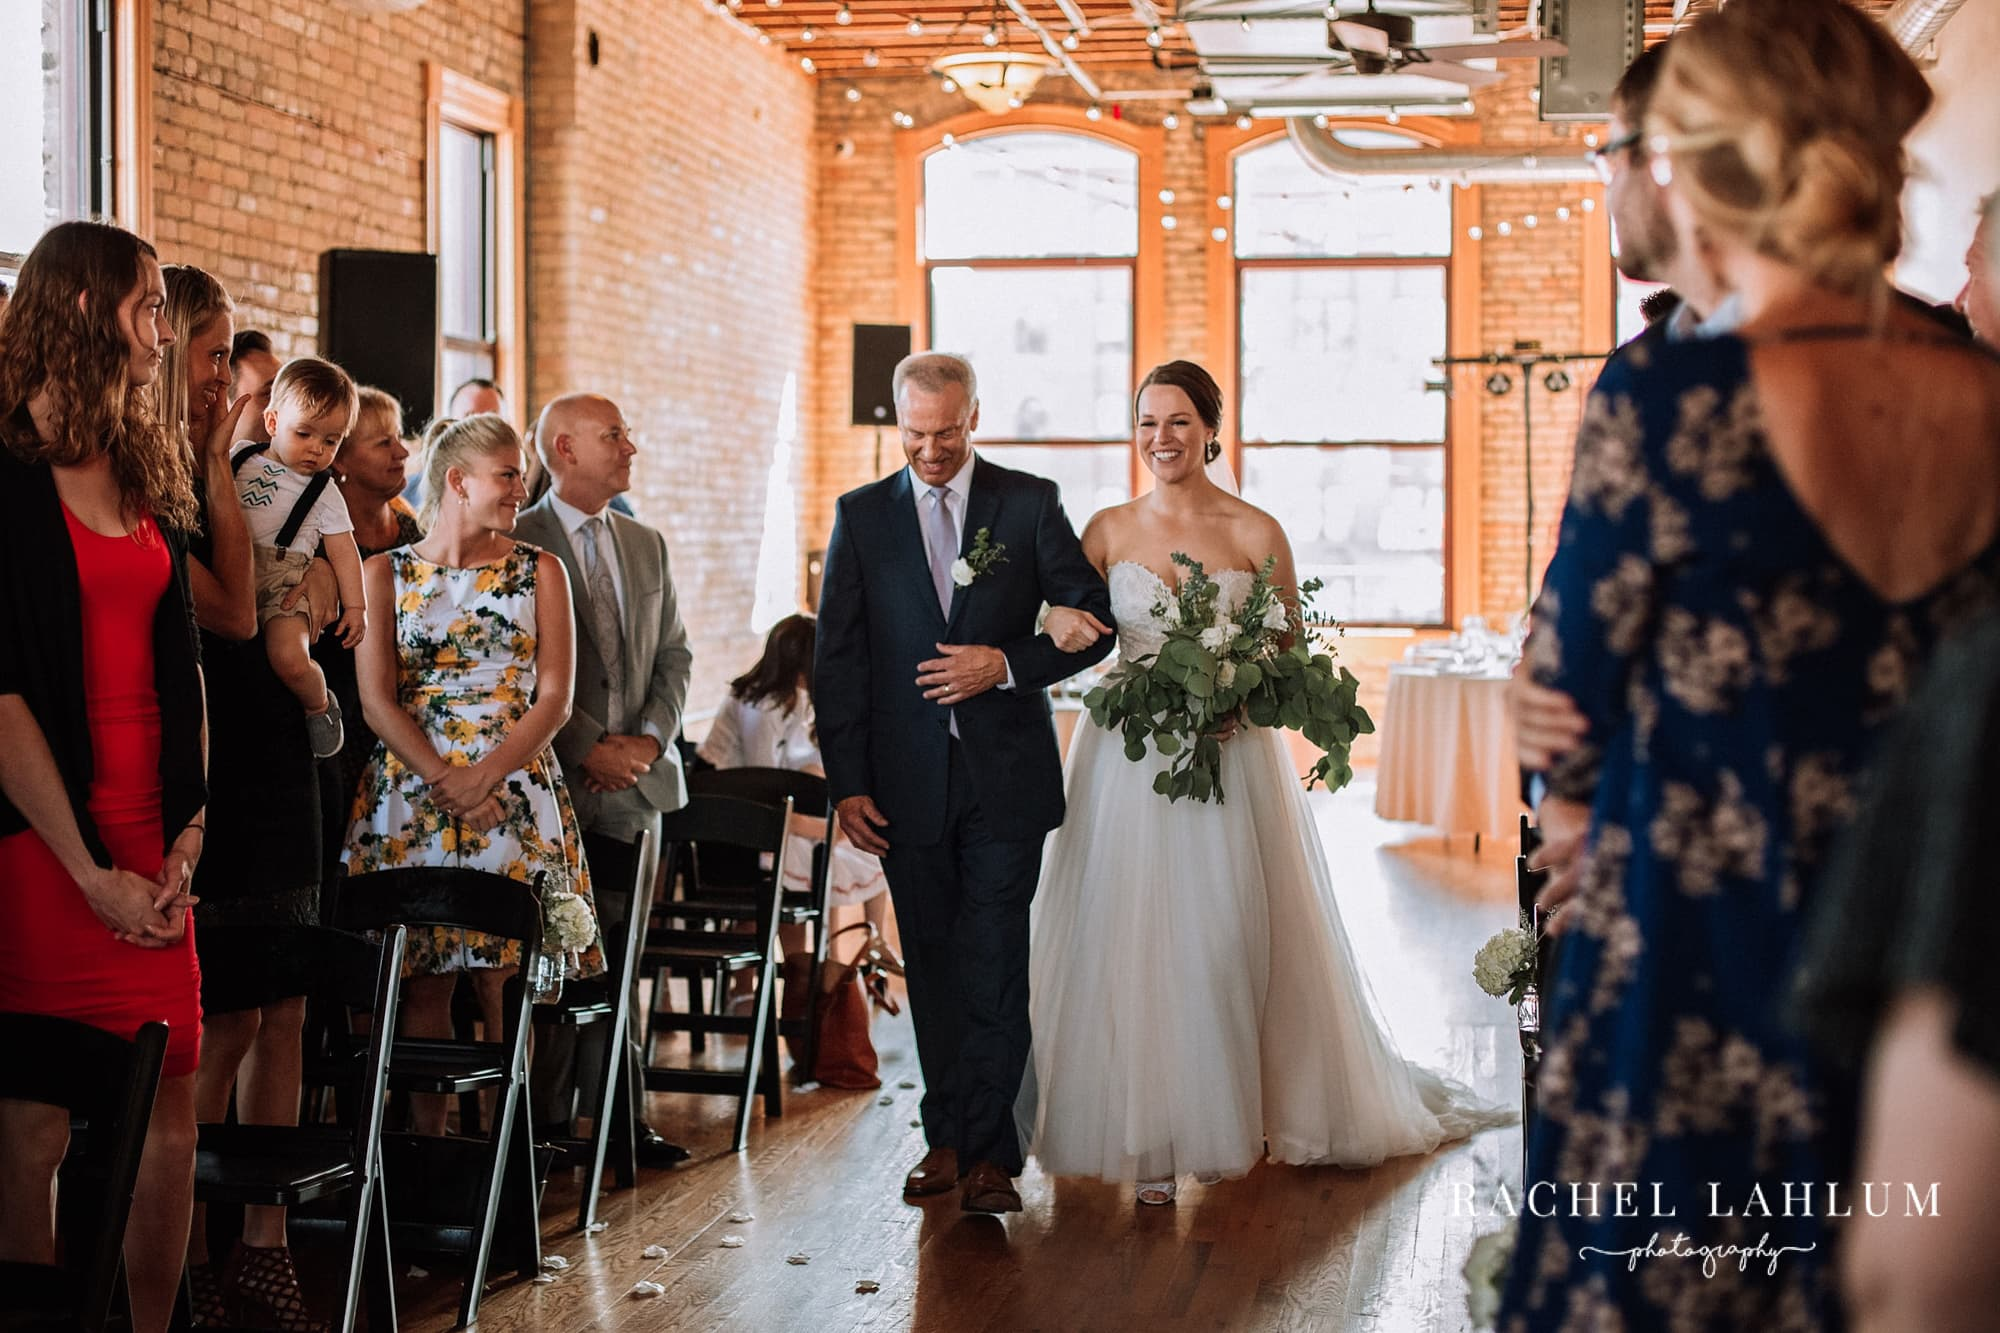 Father walks bride down the aisle for wedding at Day Block Event Center in Minneapolis.